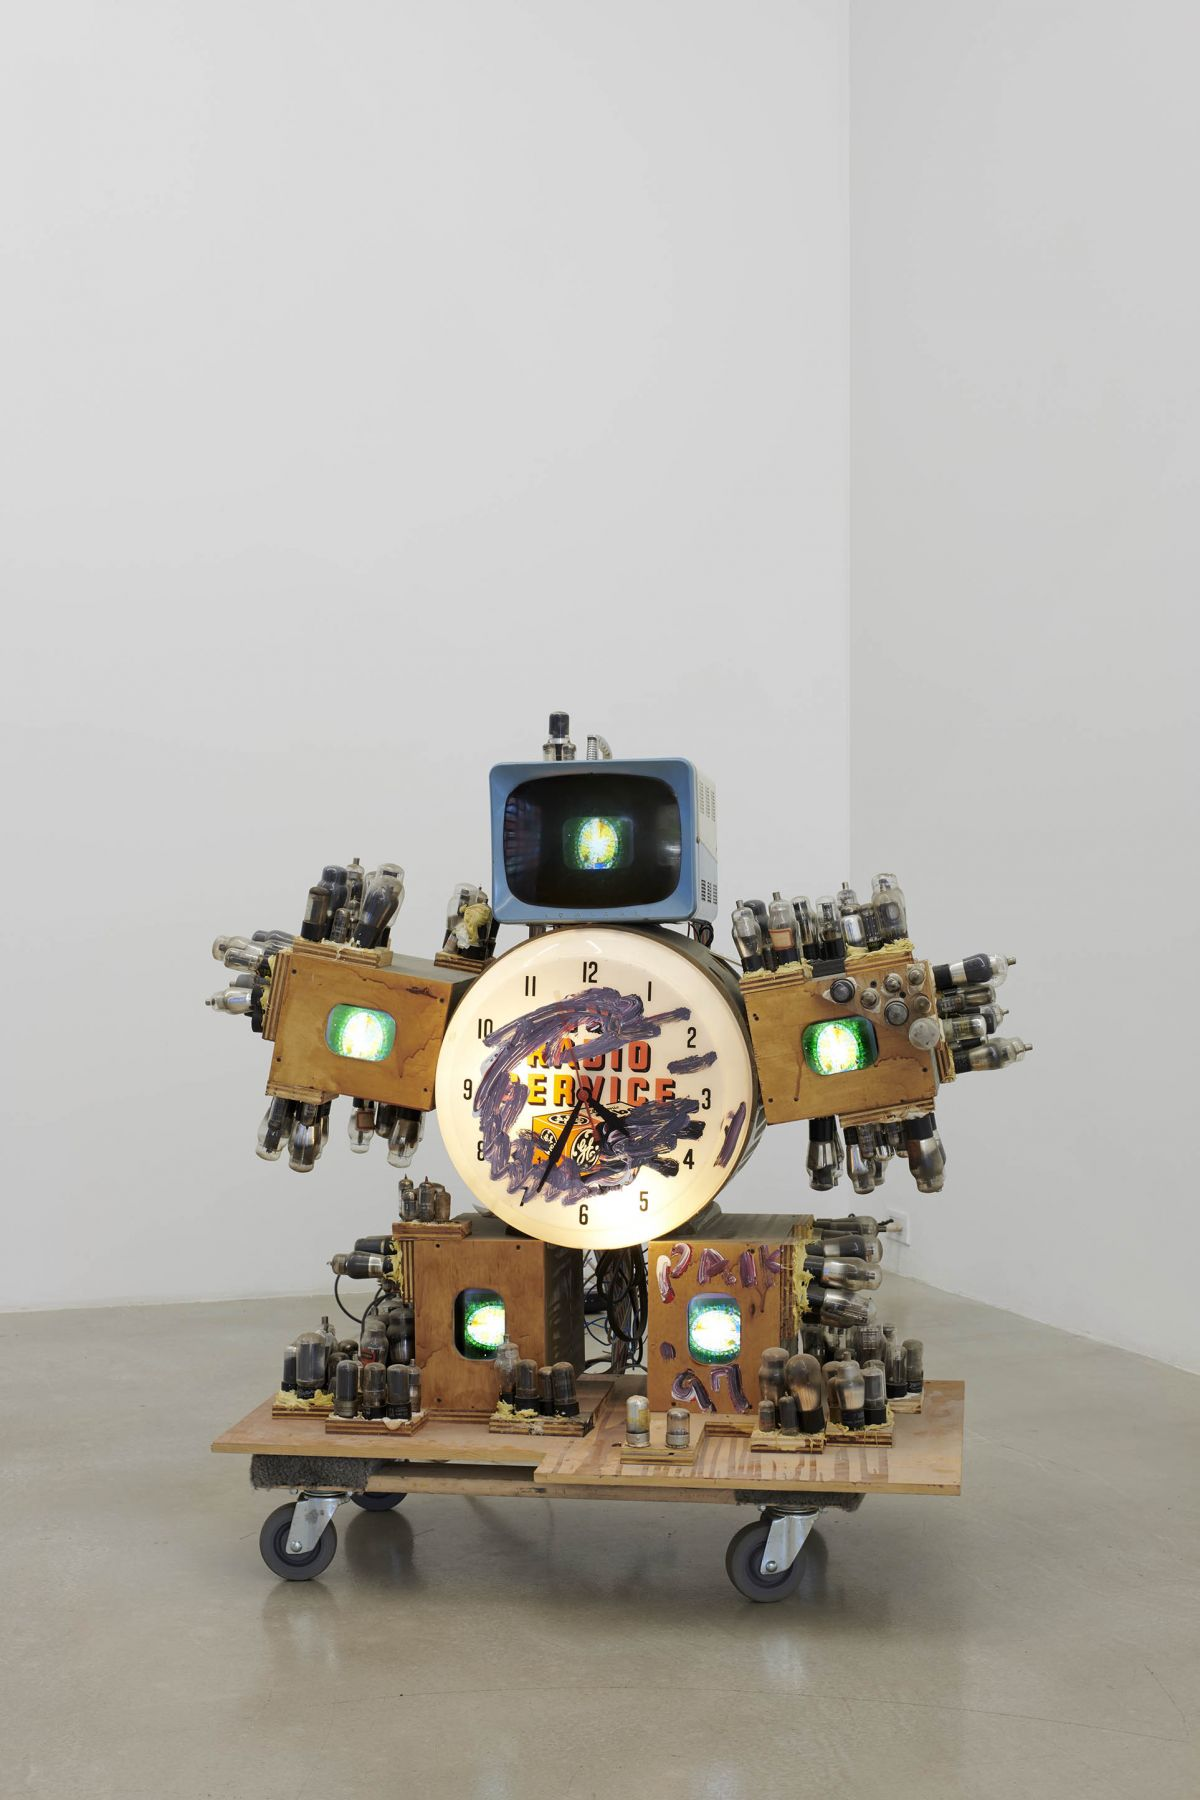 Five small televisions mounted around a clock, on wheels